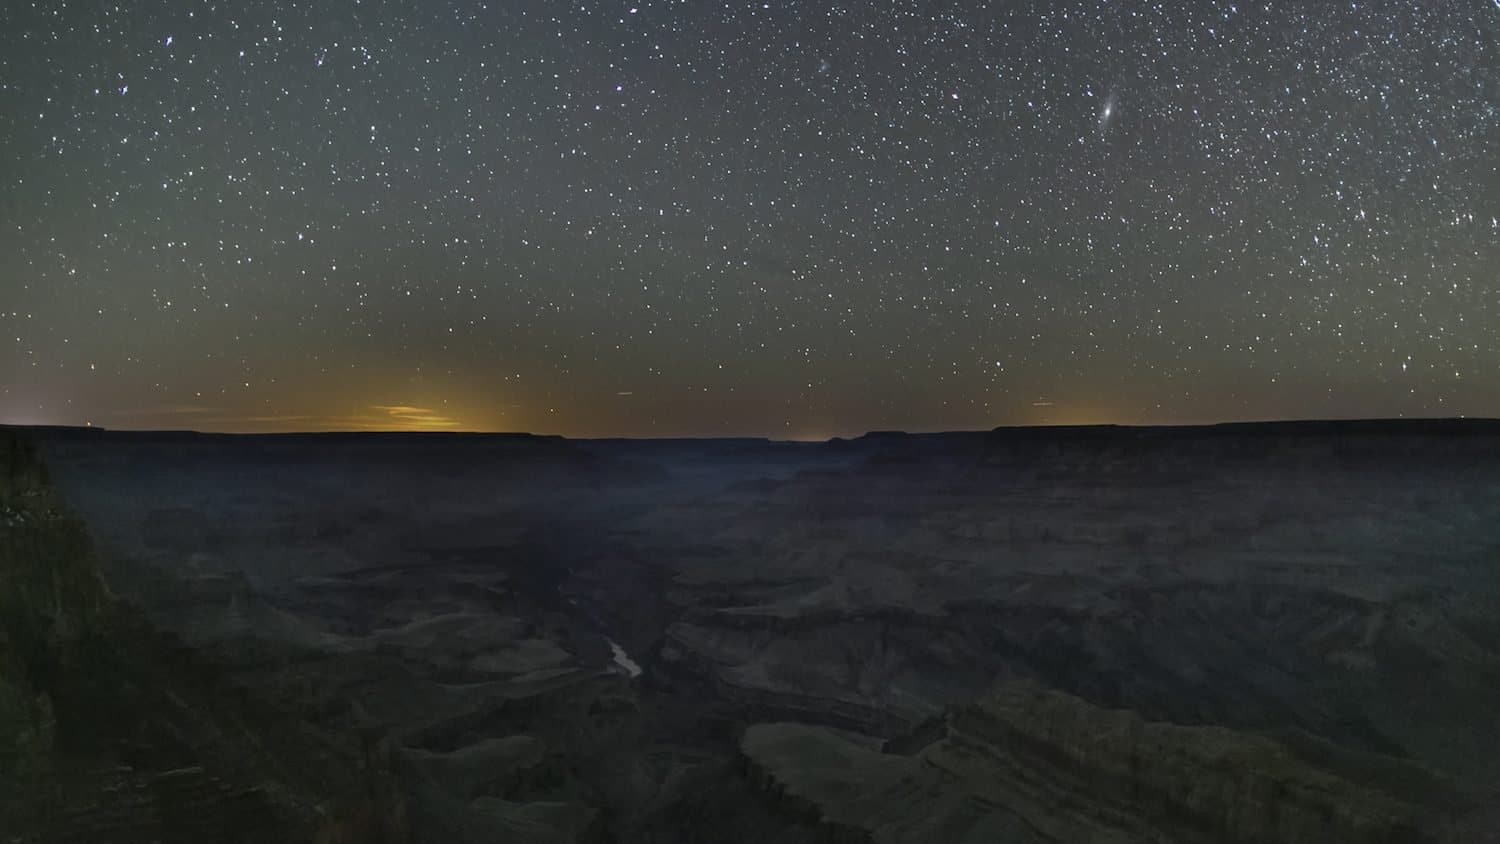 Grand Canyon Star Party - NPS via Flickr